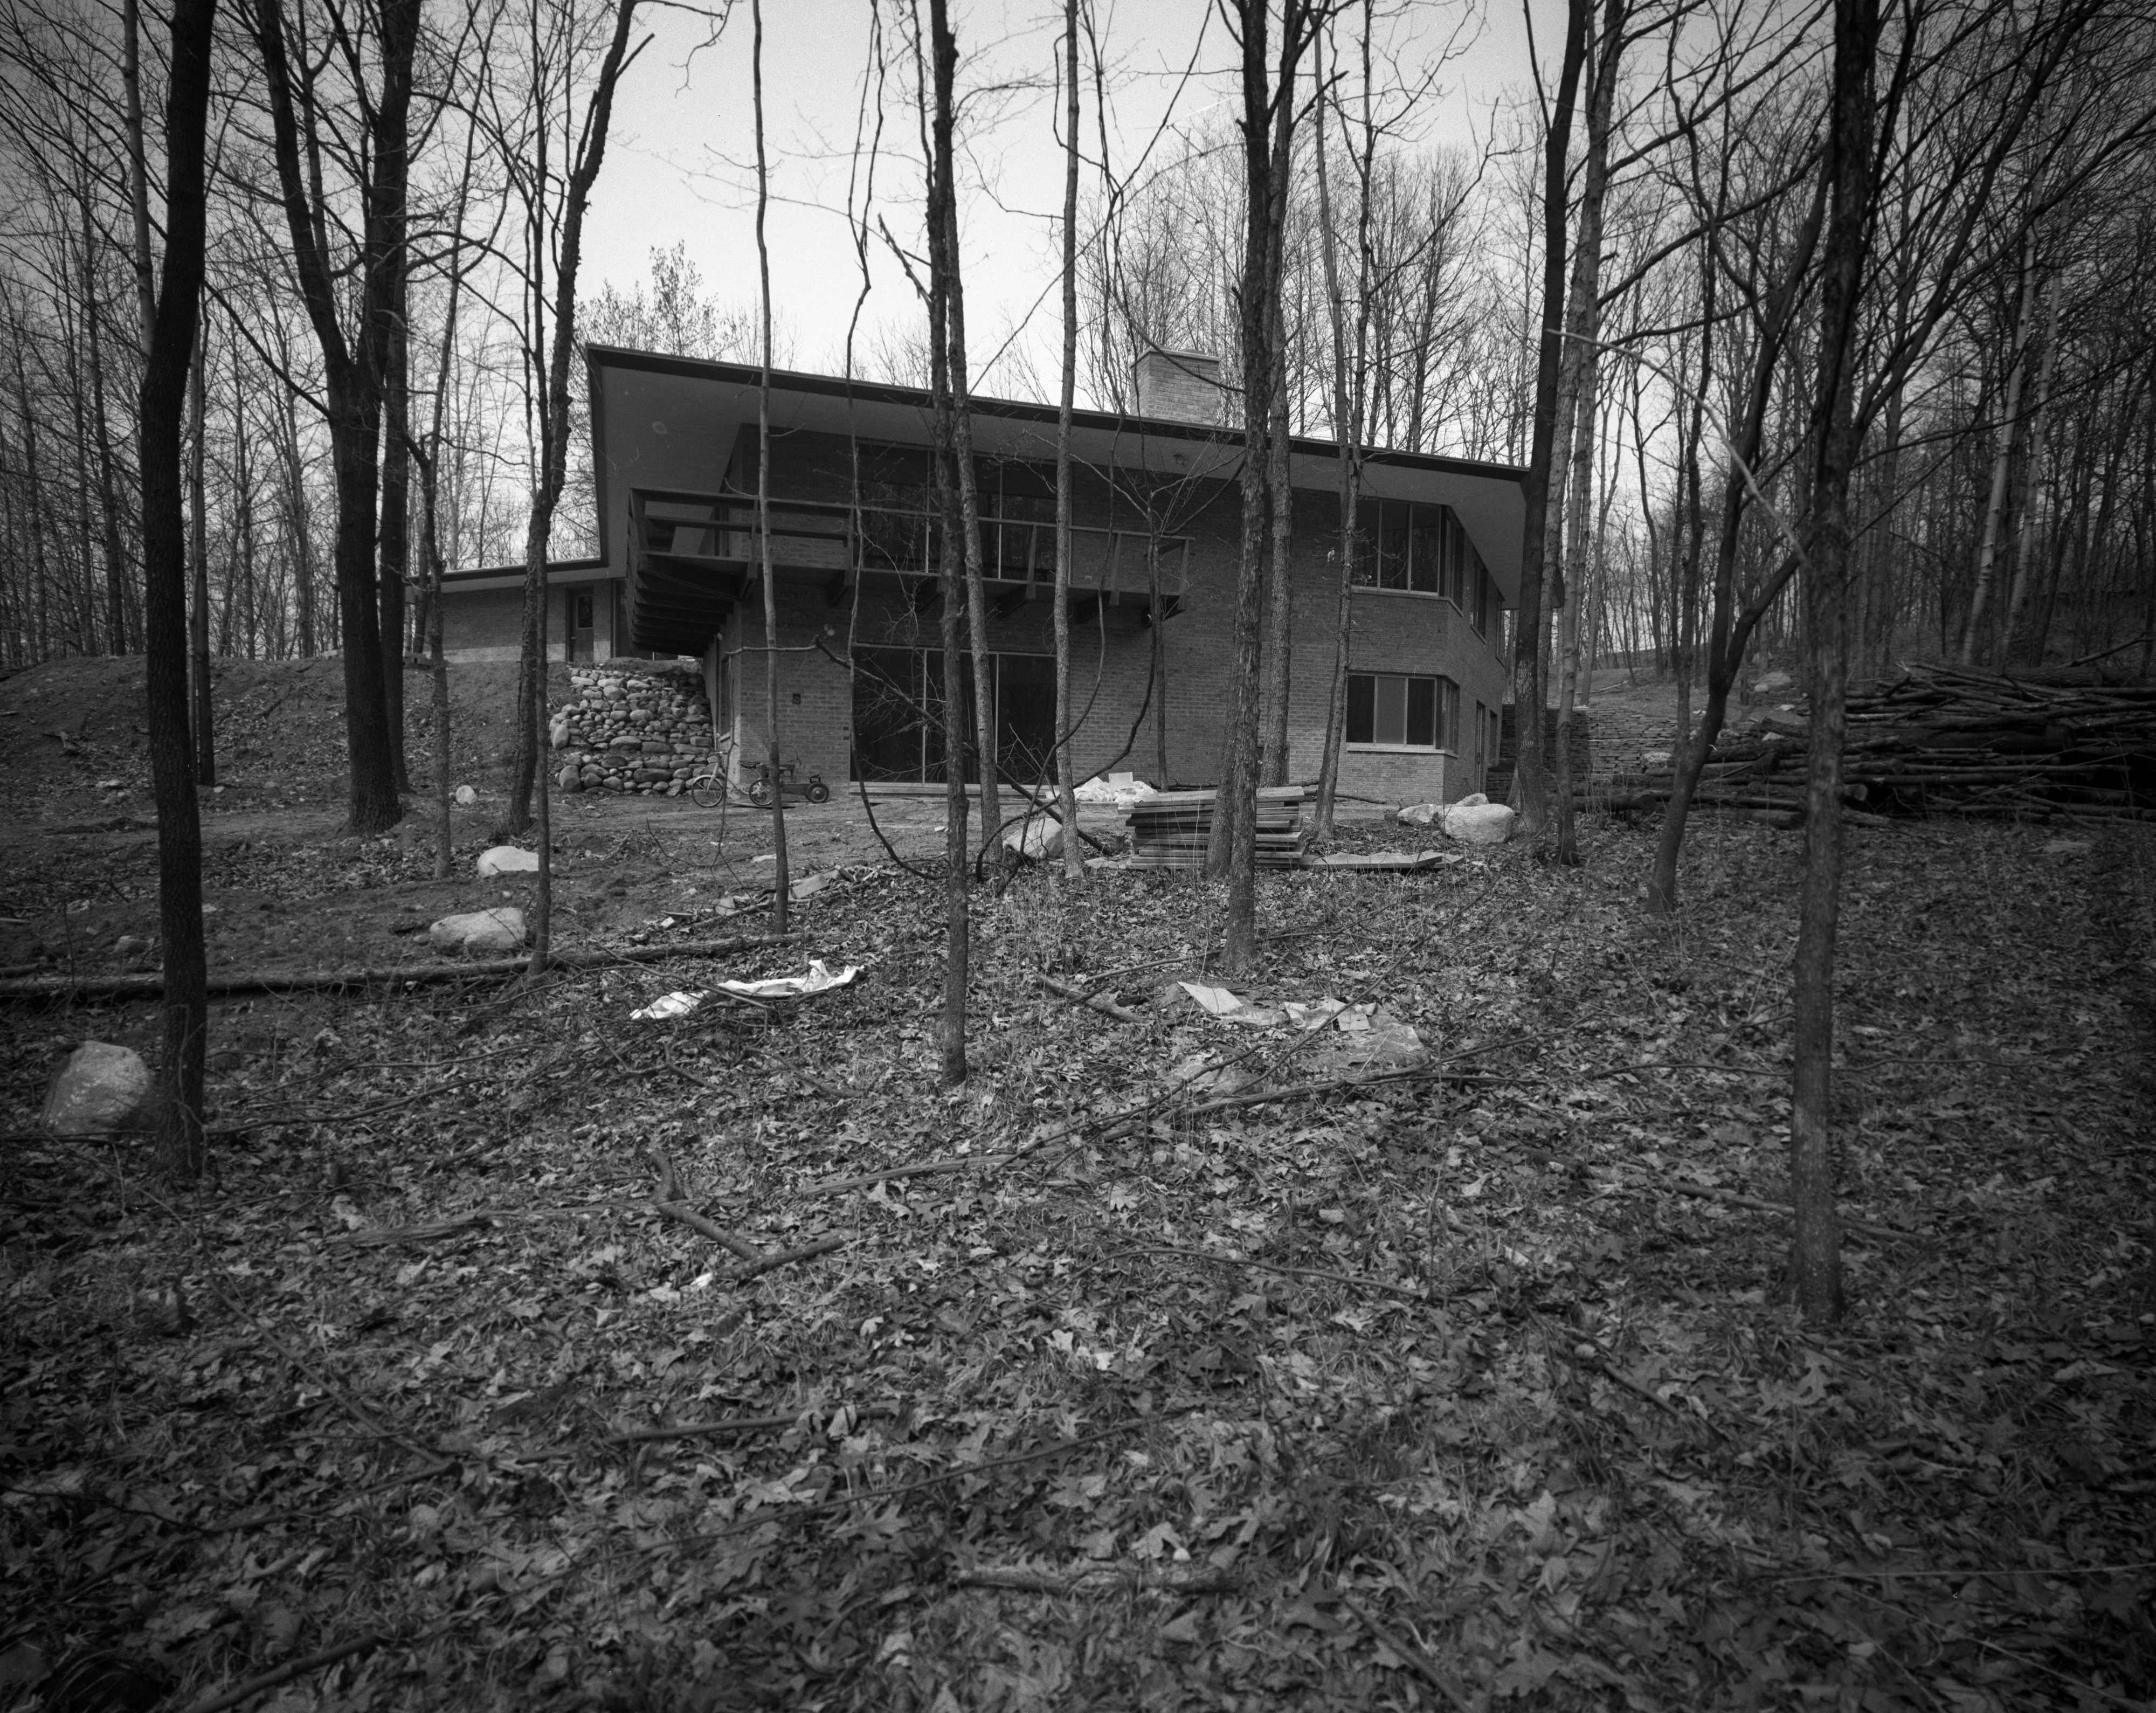 Wooded Lot Setting For Holmes Mid-Century Modern Home On N Barton Dr., April 1961 image